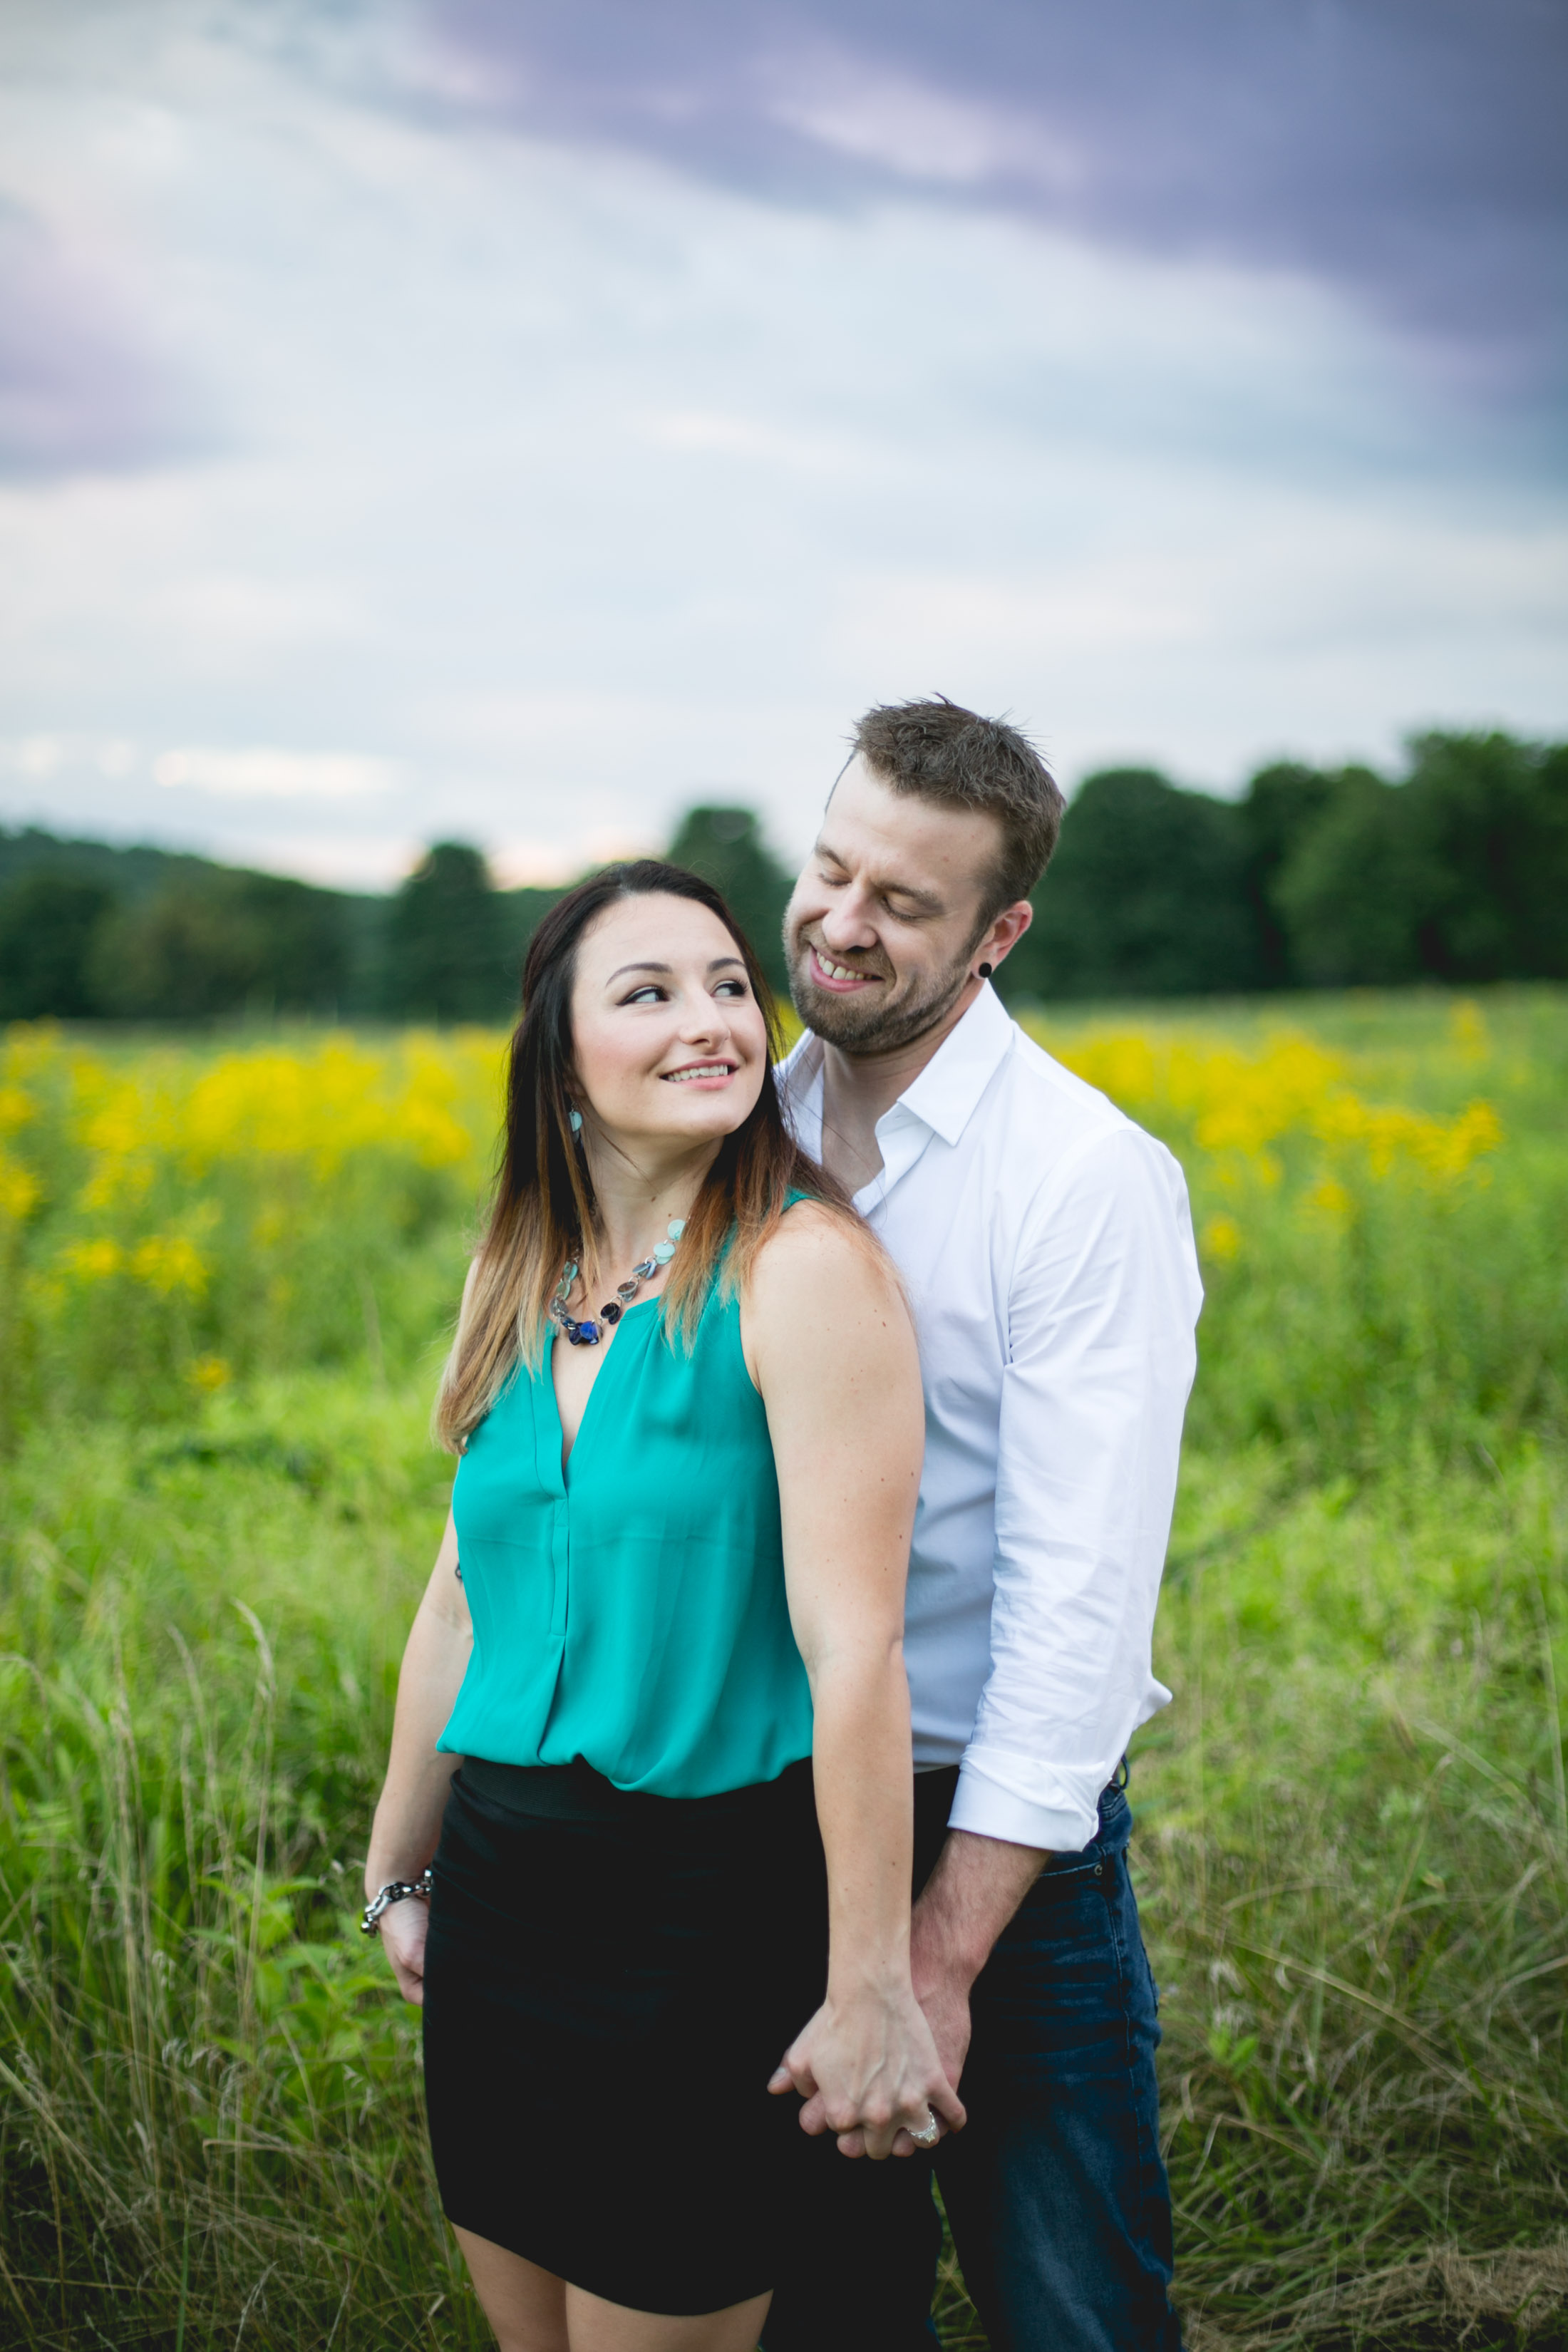 Brooke loved the look of fields, flowers and nature but didn't know where would work best for their engagement session!  I suggested my favorite park and it was exactly what they were looking for!